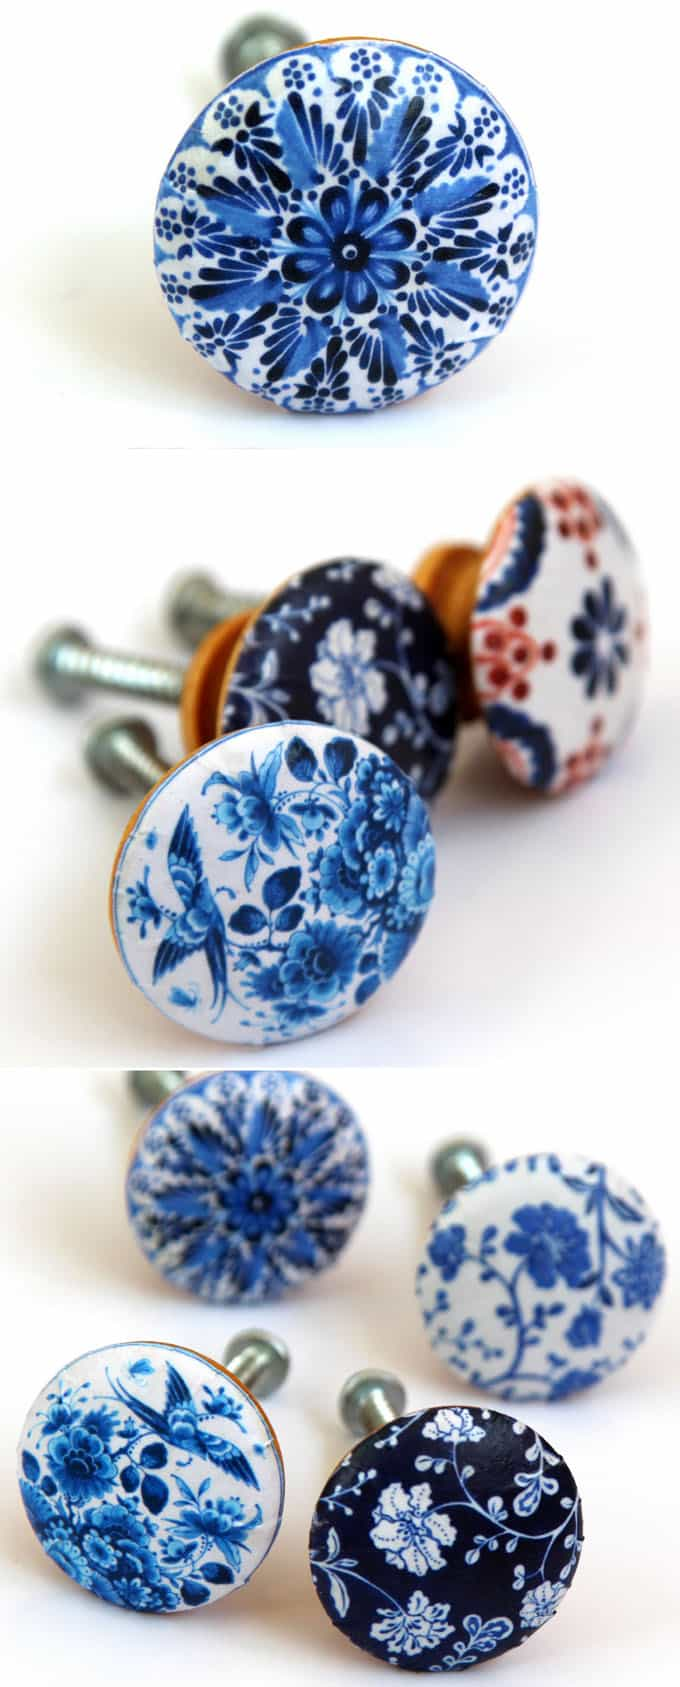 5-minute-designer-knobs-apieceofrainbow-blog (3)